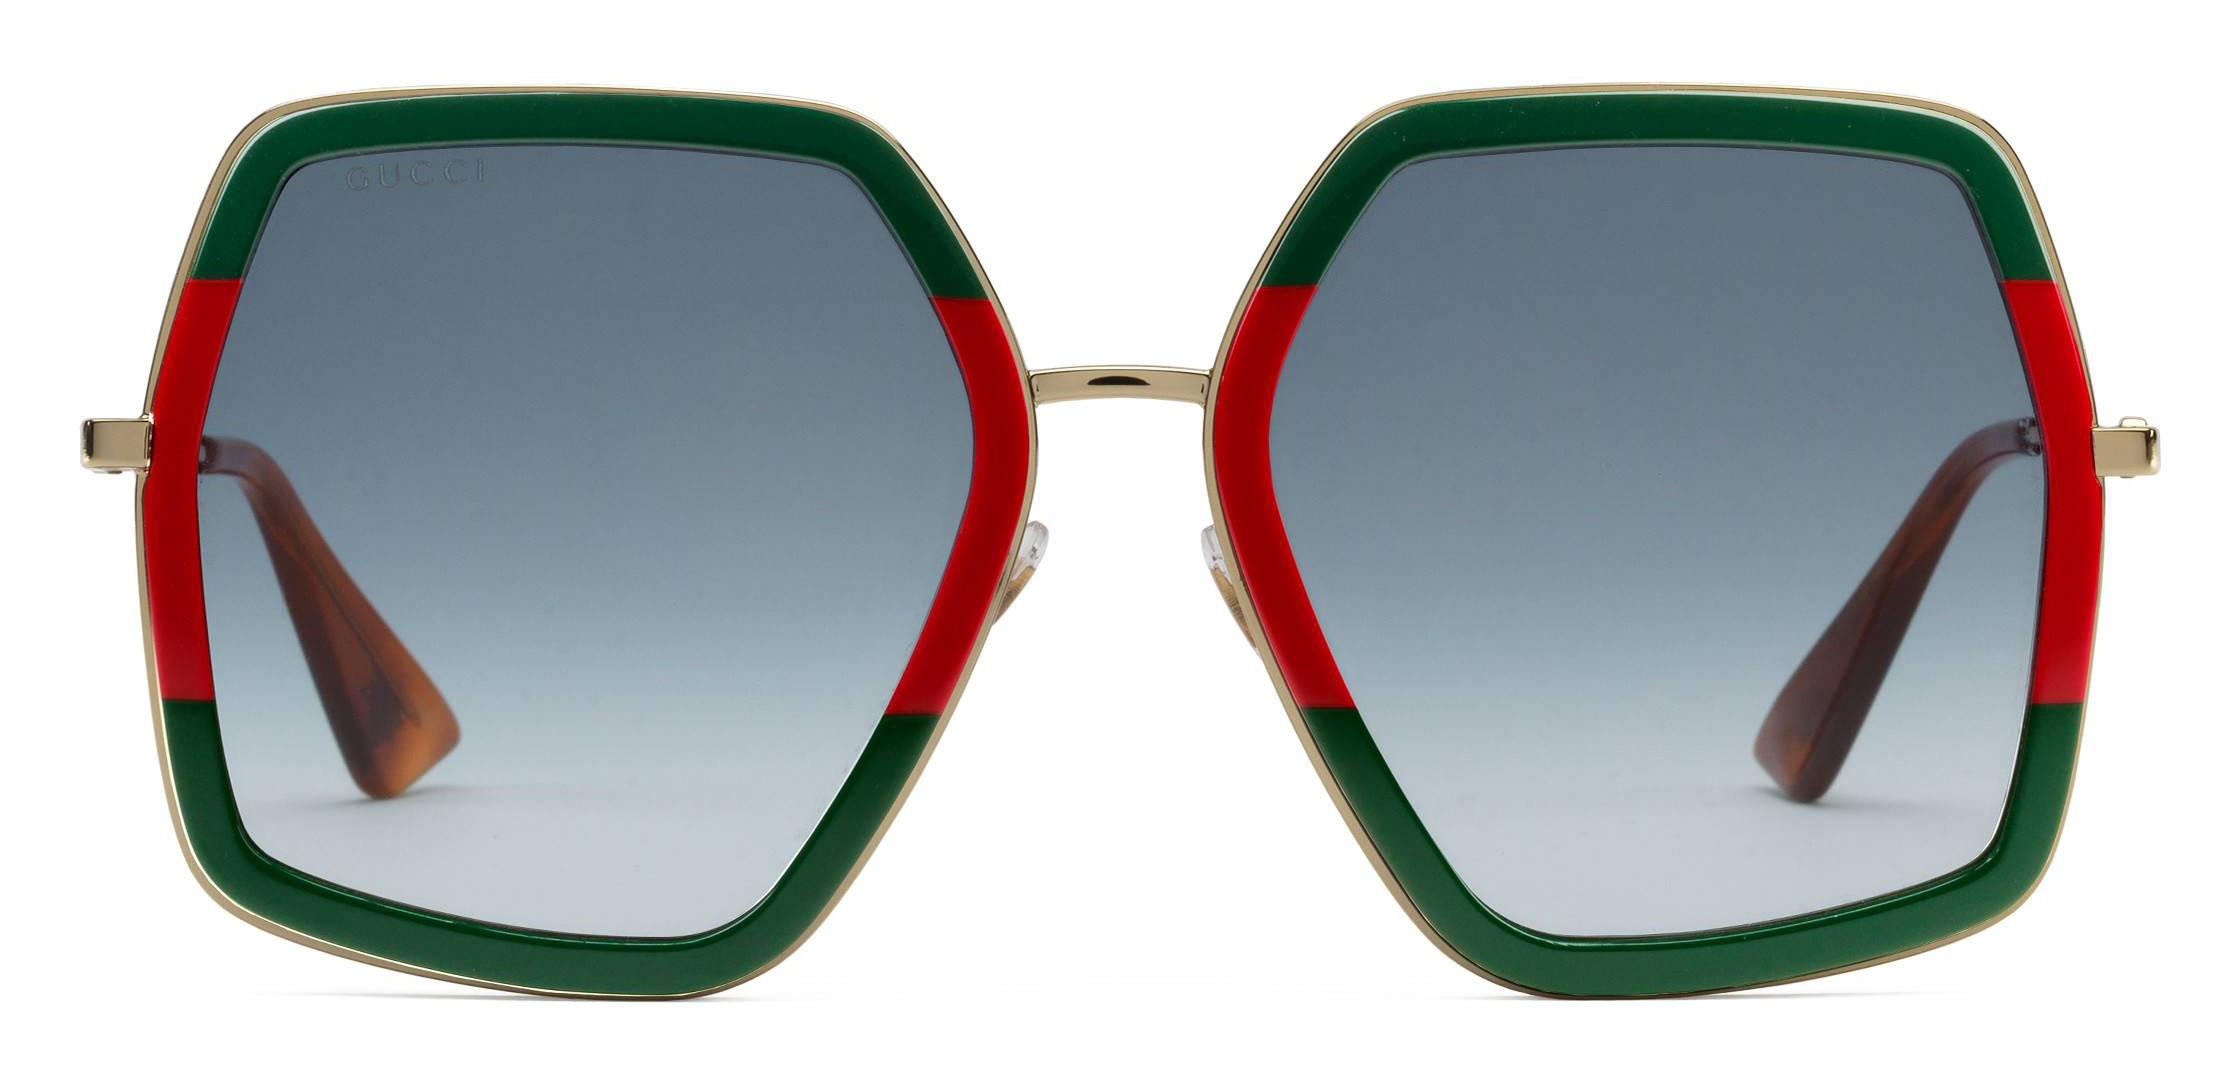 7d1797d6 Gucci - Oversized Square Sunglasses in Metal - Gold Coloured with Green and  Red Acetate Glitter - Gucci Eyewear